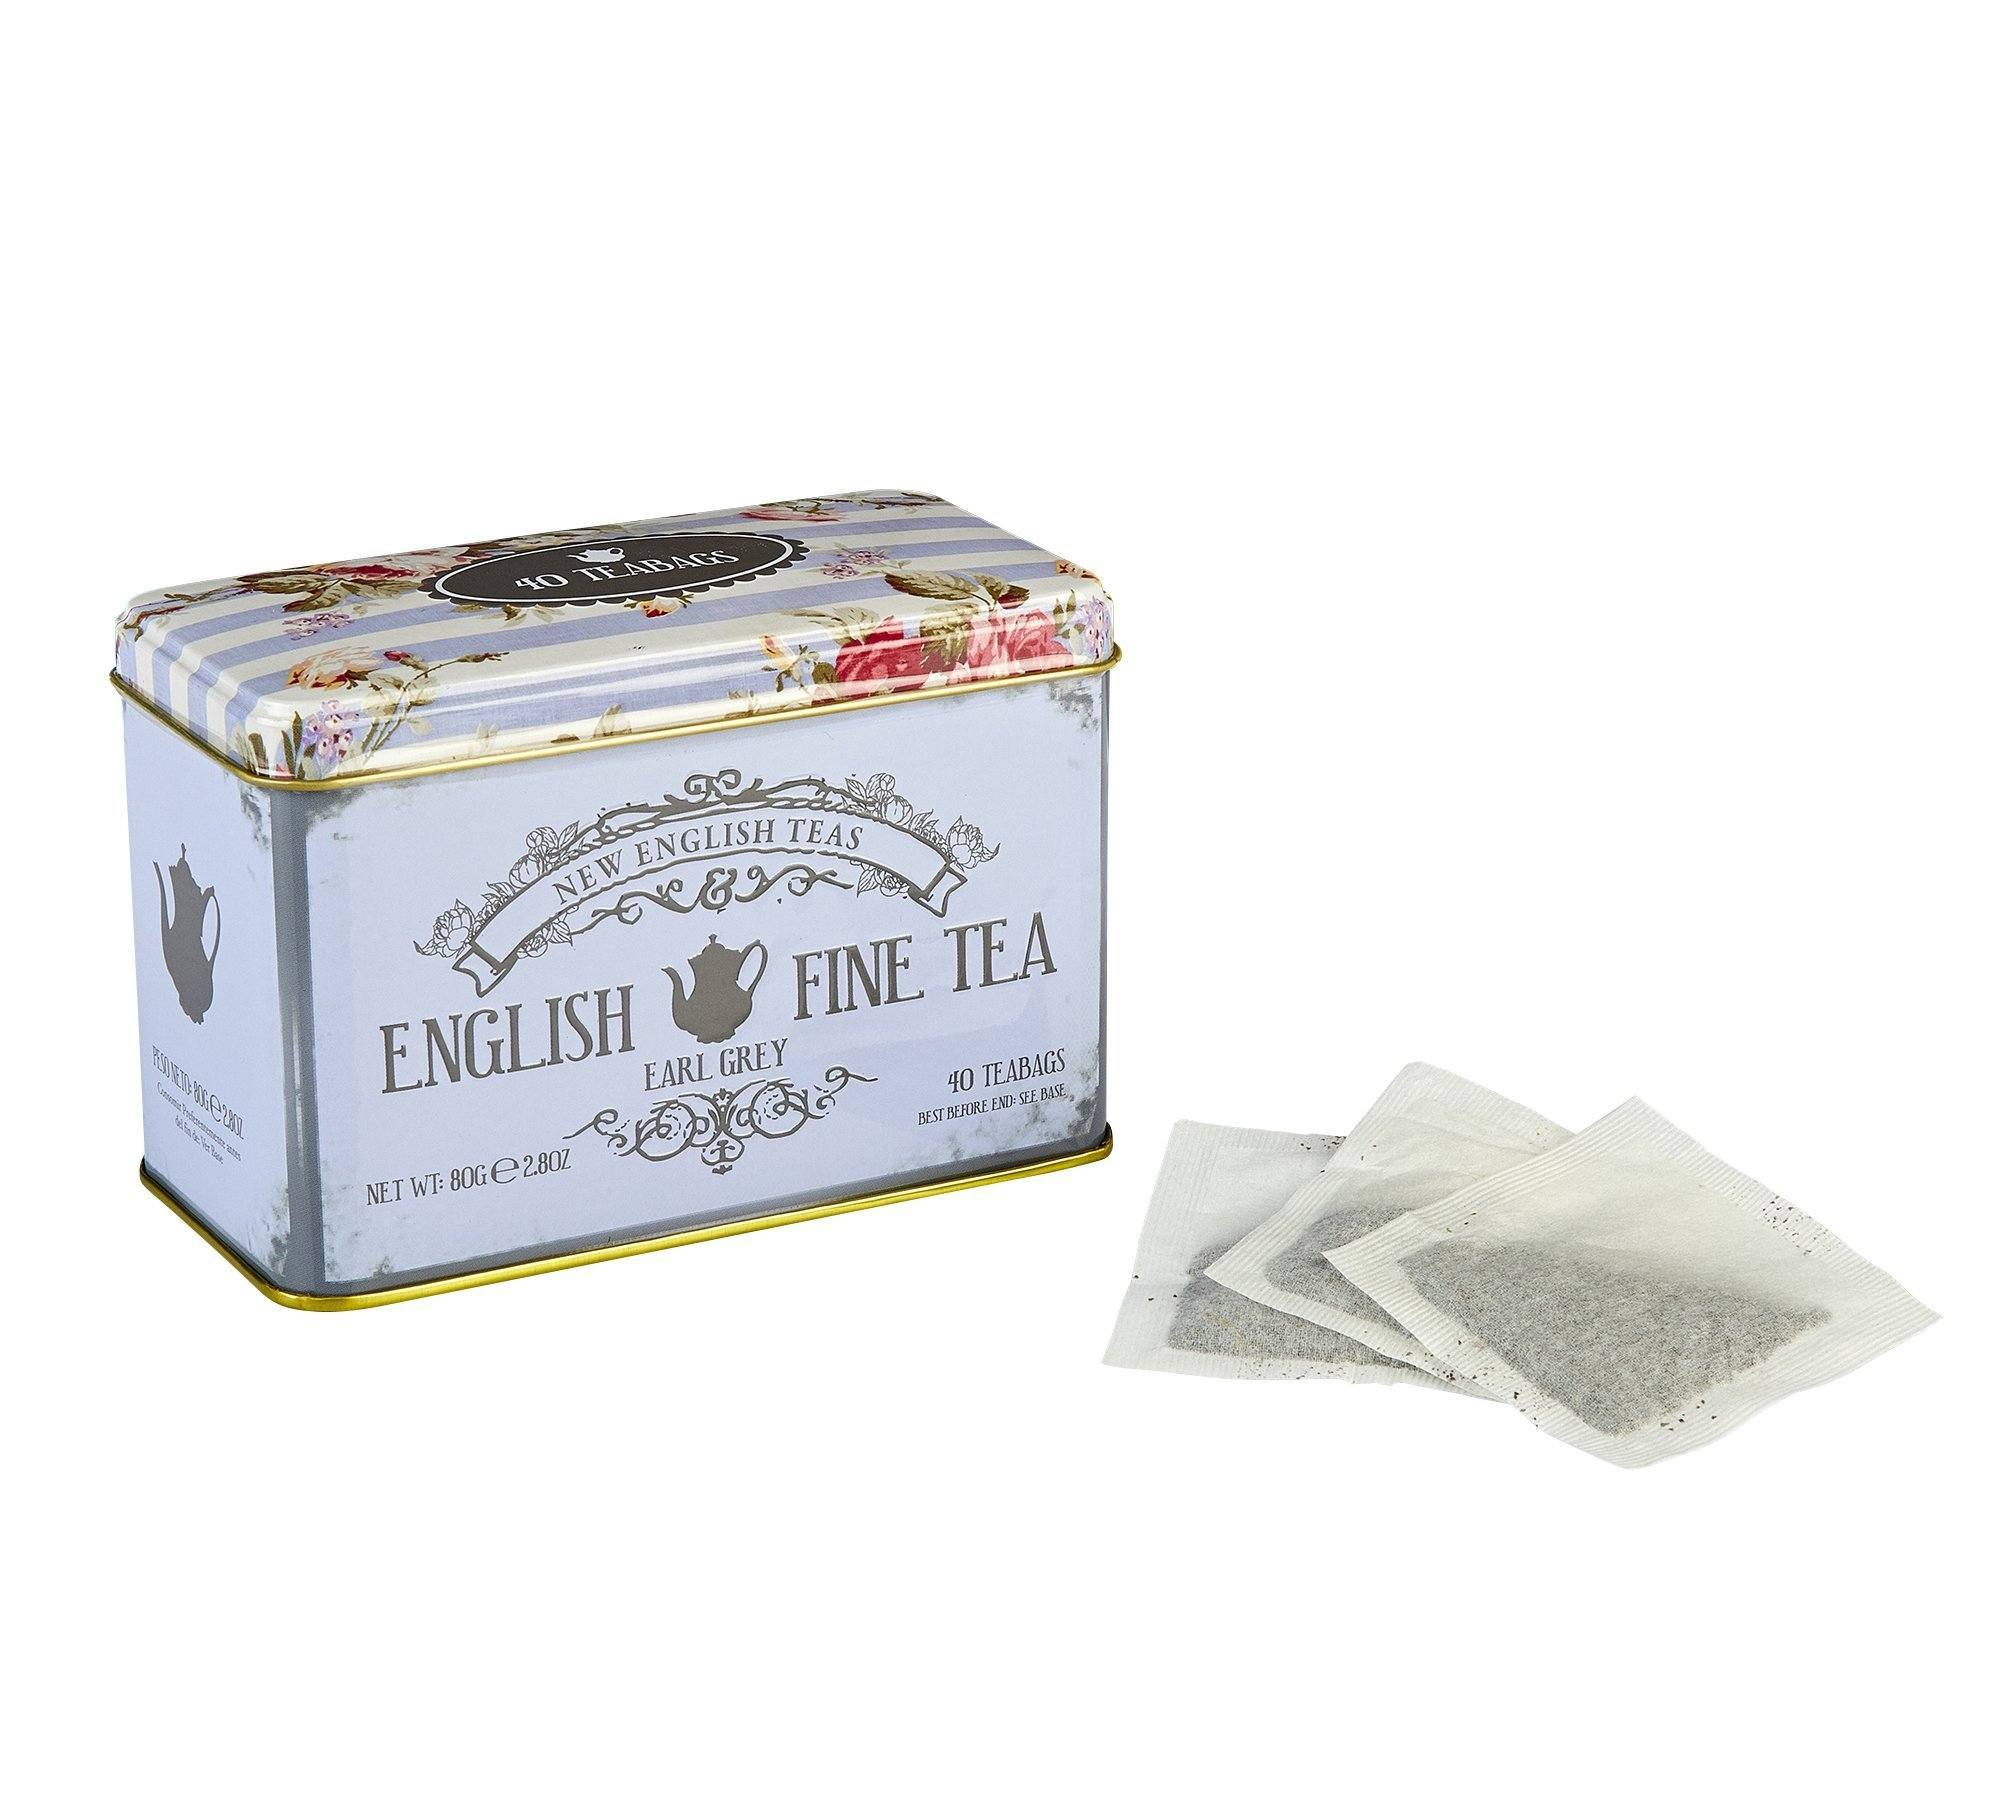 Floral Tea Tin with Teabags